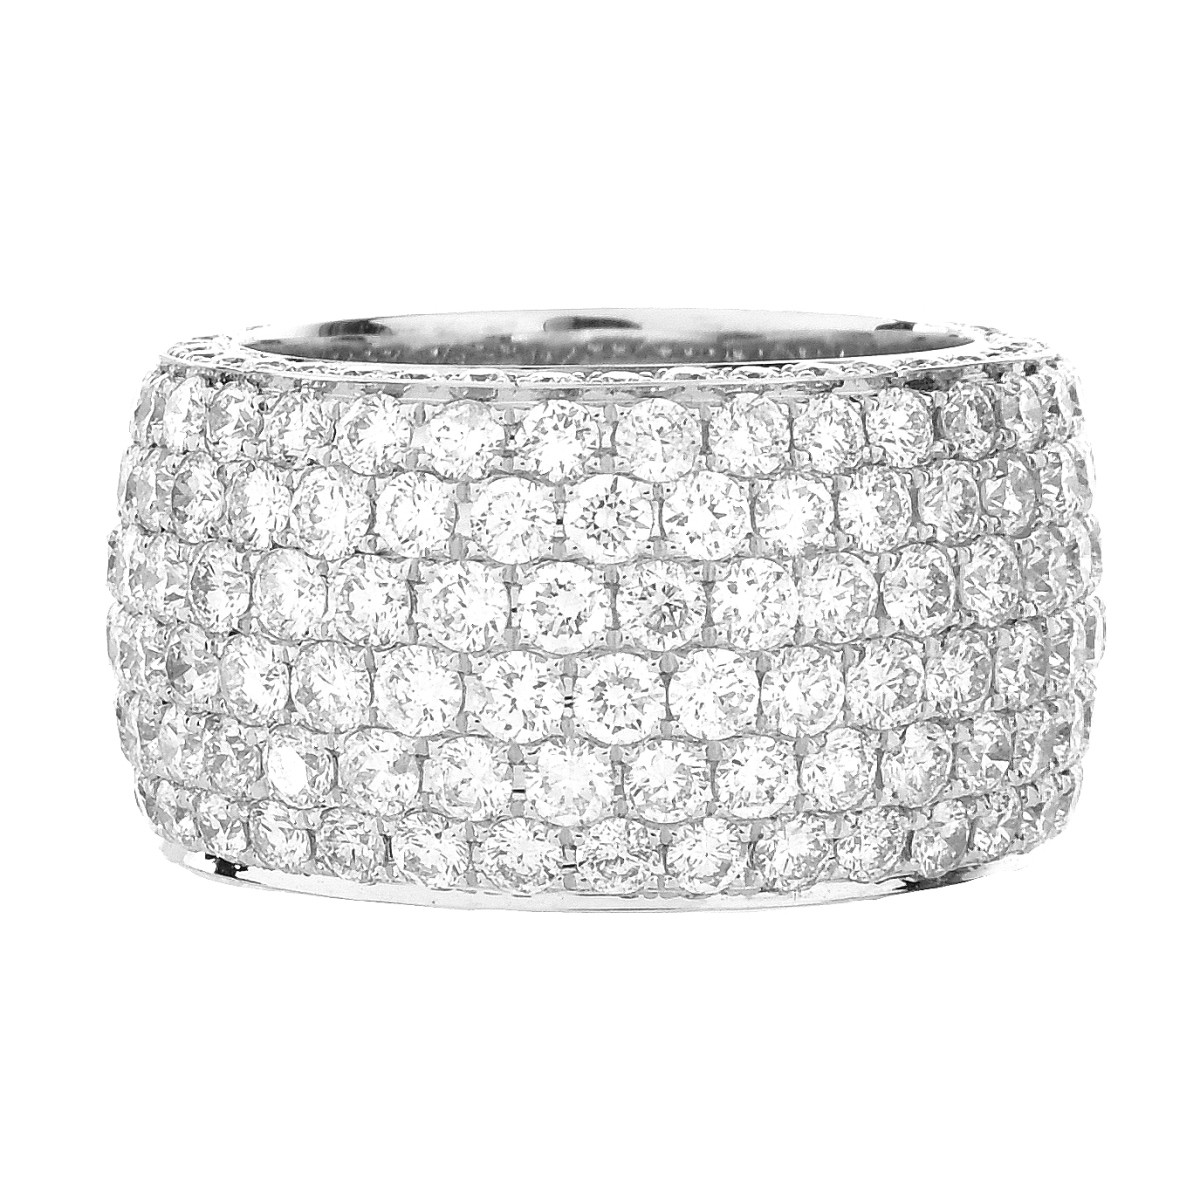 Cartier style Diamond Eternity Band